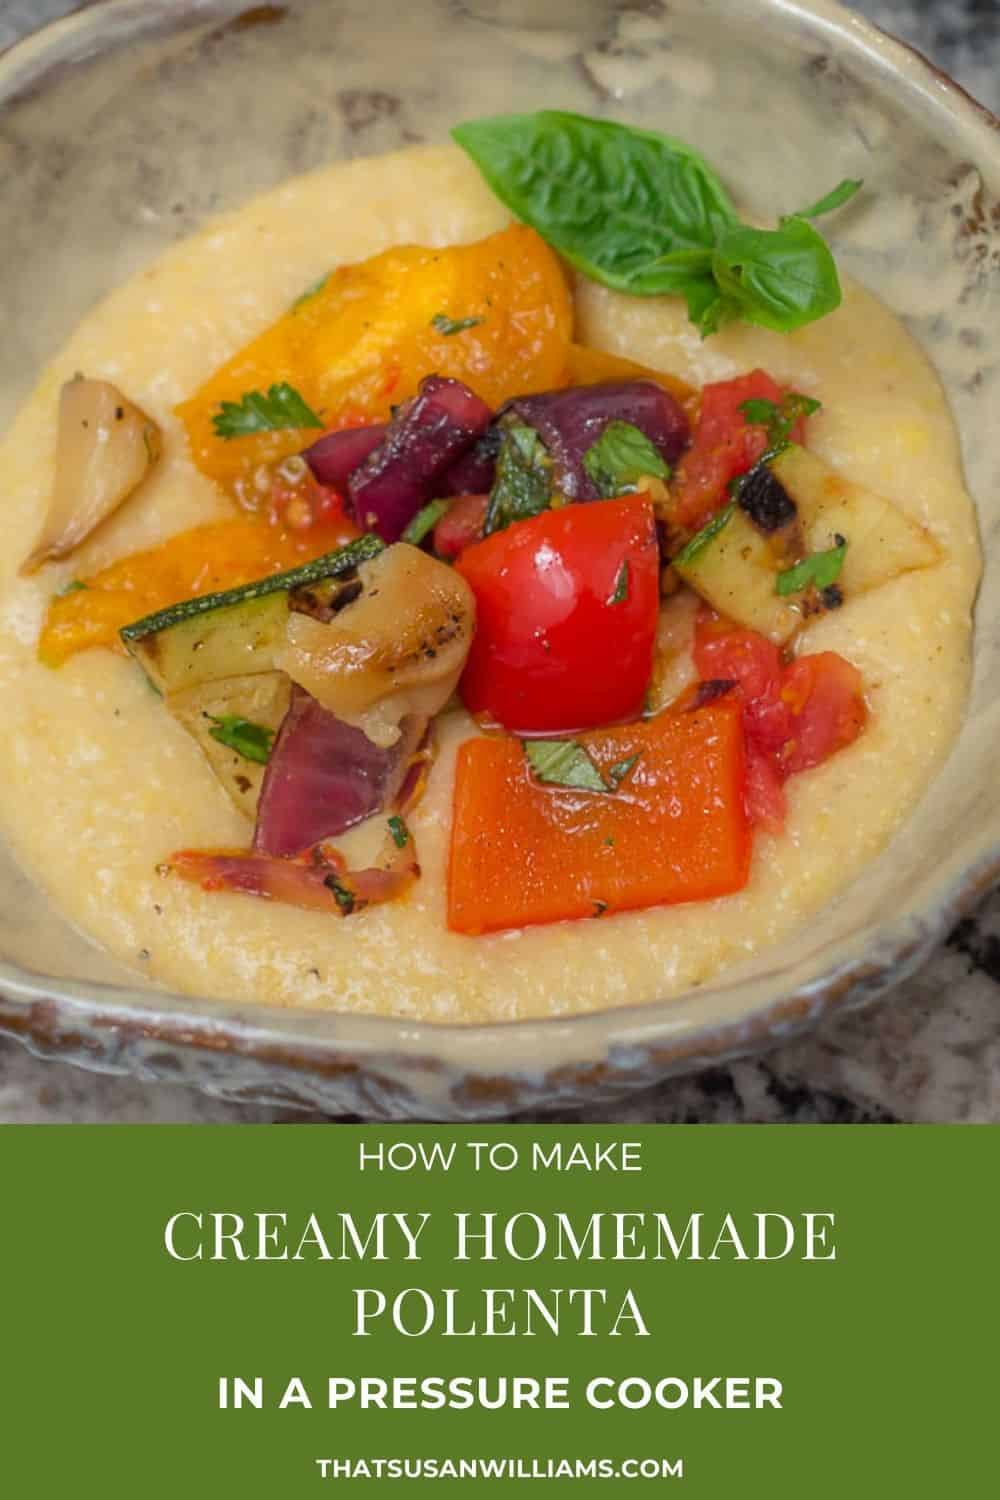 How to Make Creamy Homemade Polenta in a Pressure Cooker